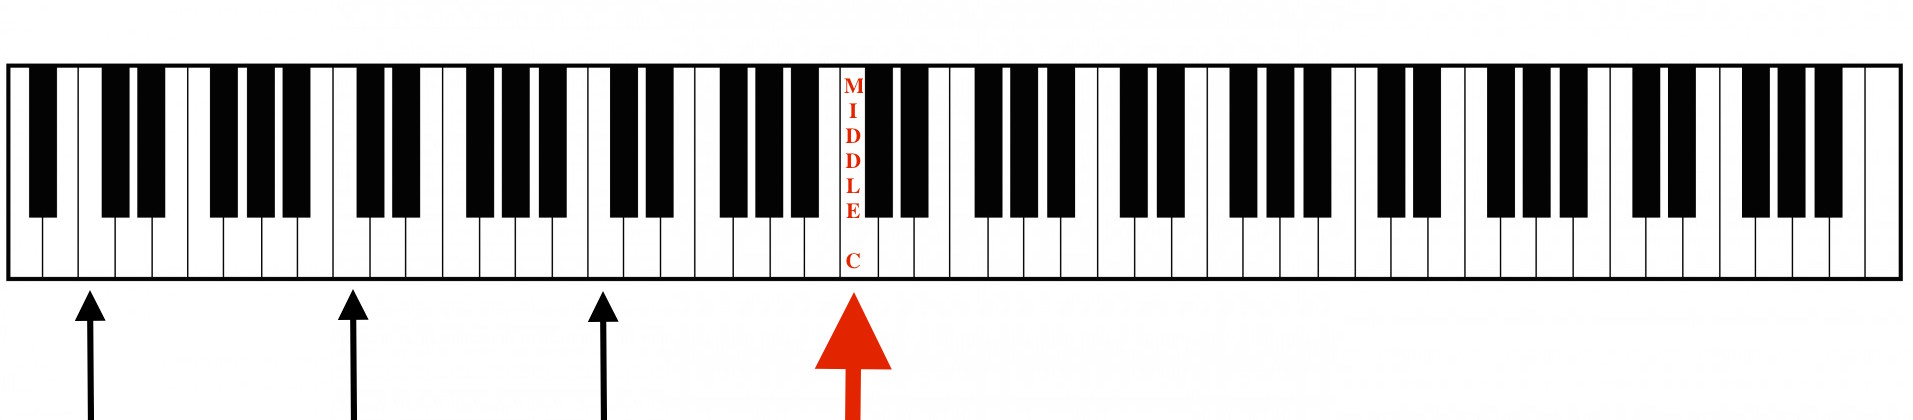 how to put numbers baove eachother on keyboard